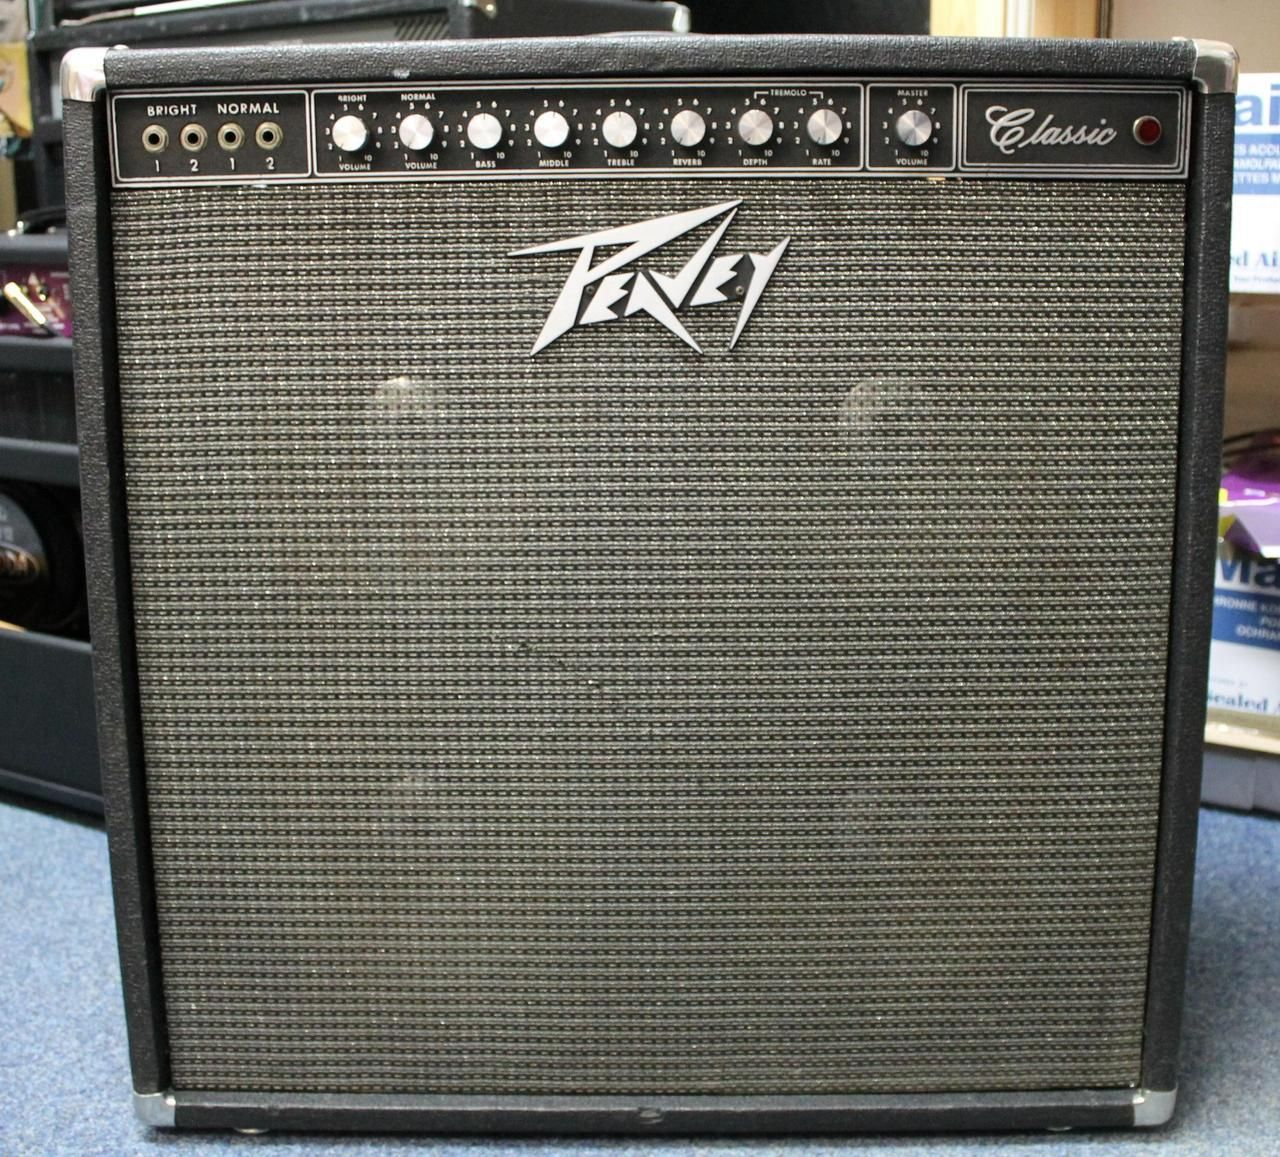 Peavey Classic (Series A, made in 1974), valve hybrid 4x10 guitar amplifier